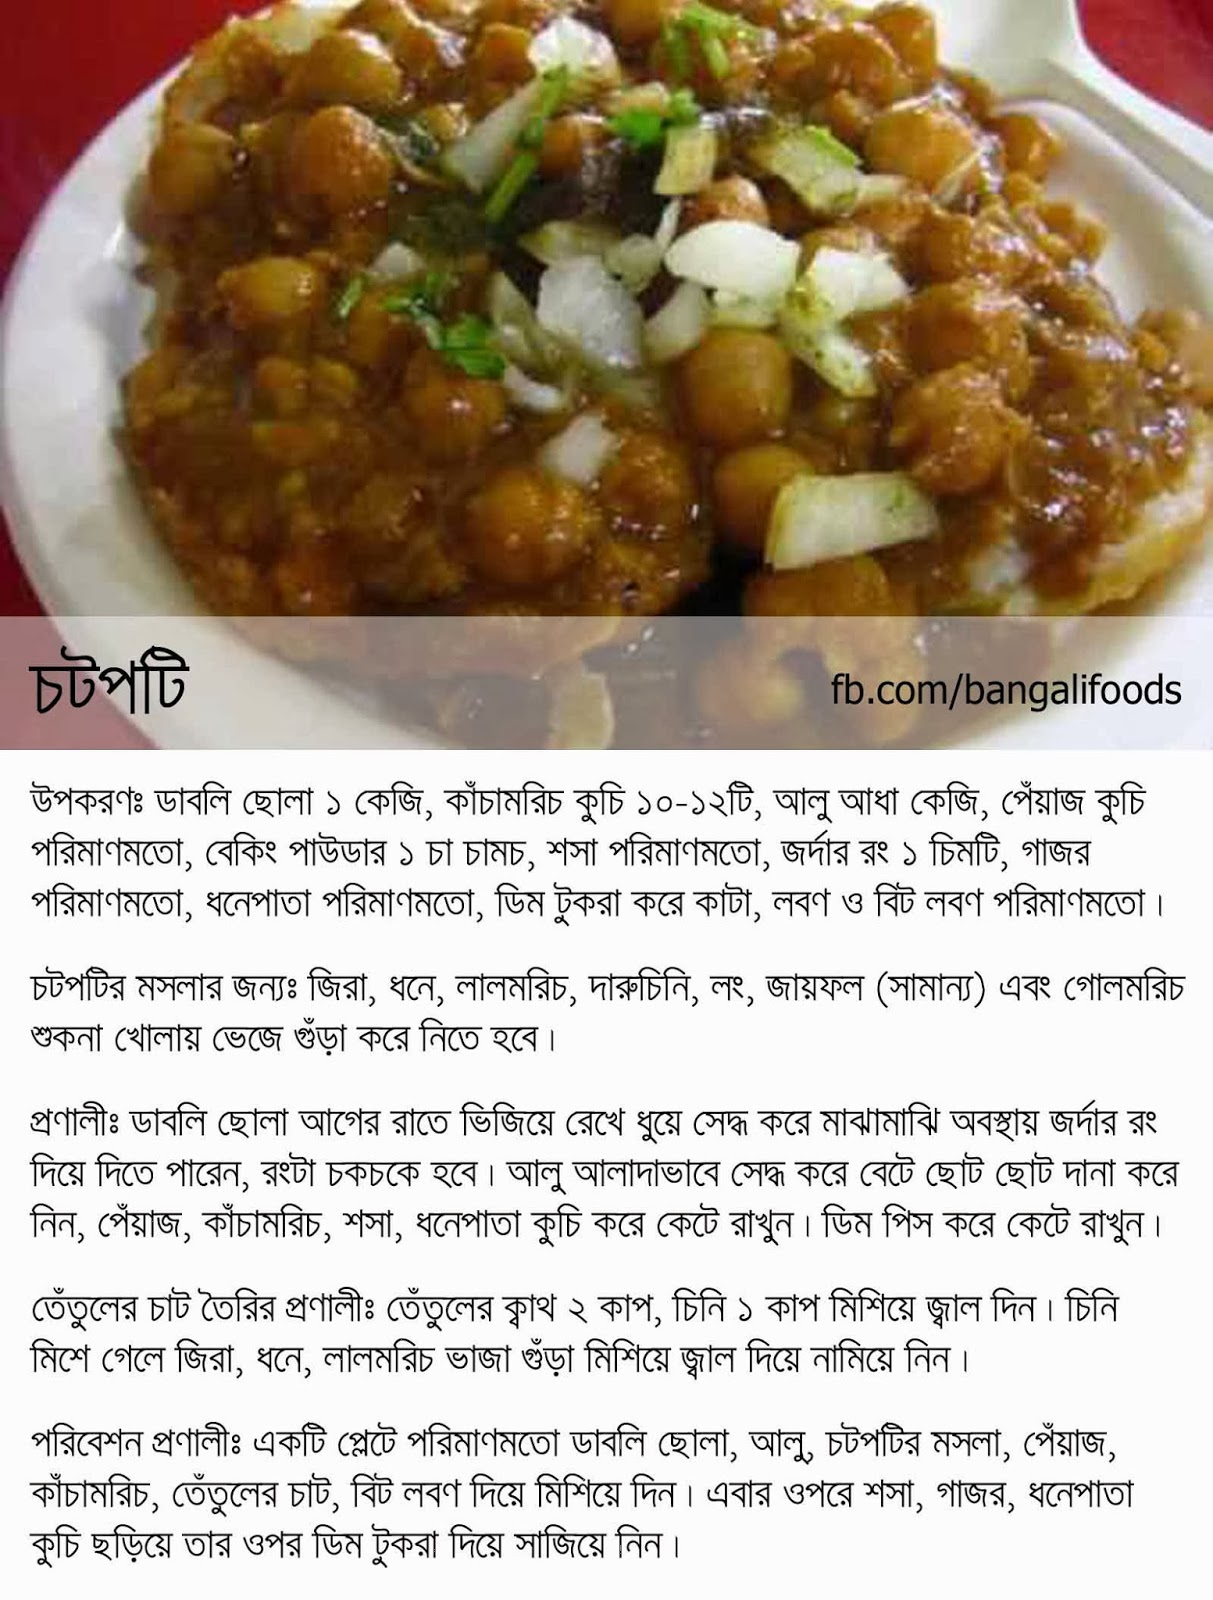 Food recipe bengali food recipe in bengali language bengali food recipe in bengali language pictures forumfinder